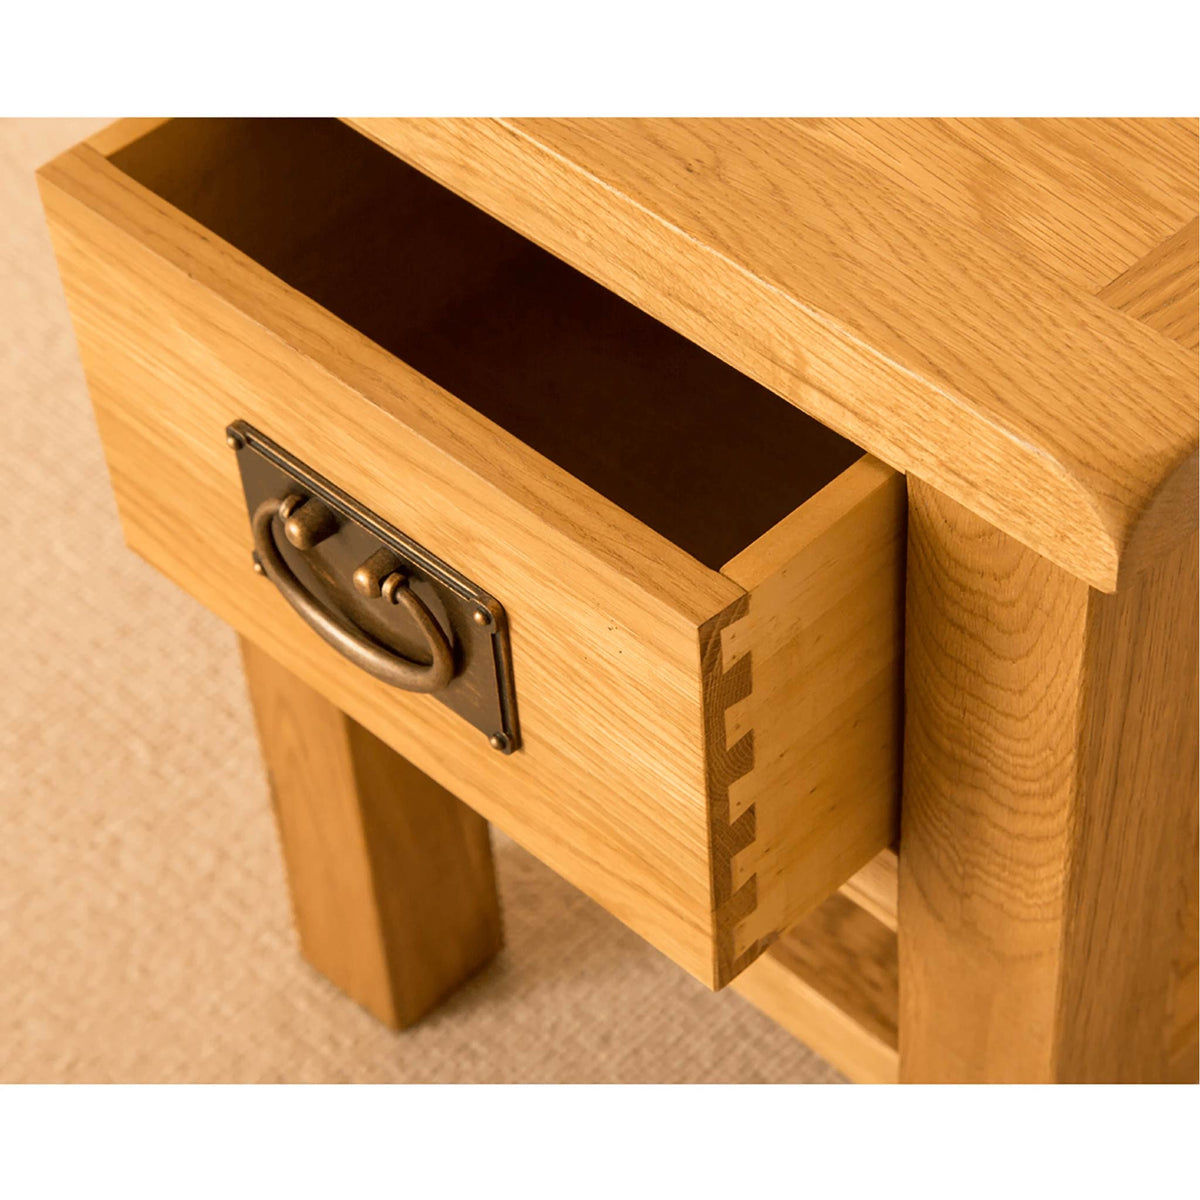 Lanner Oak Lamp Table drawer dovetail joint view